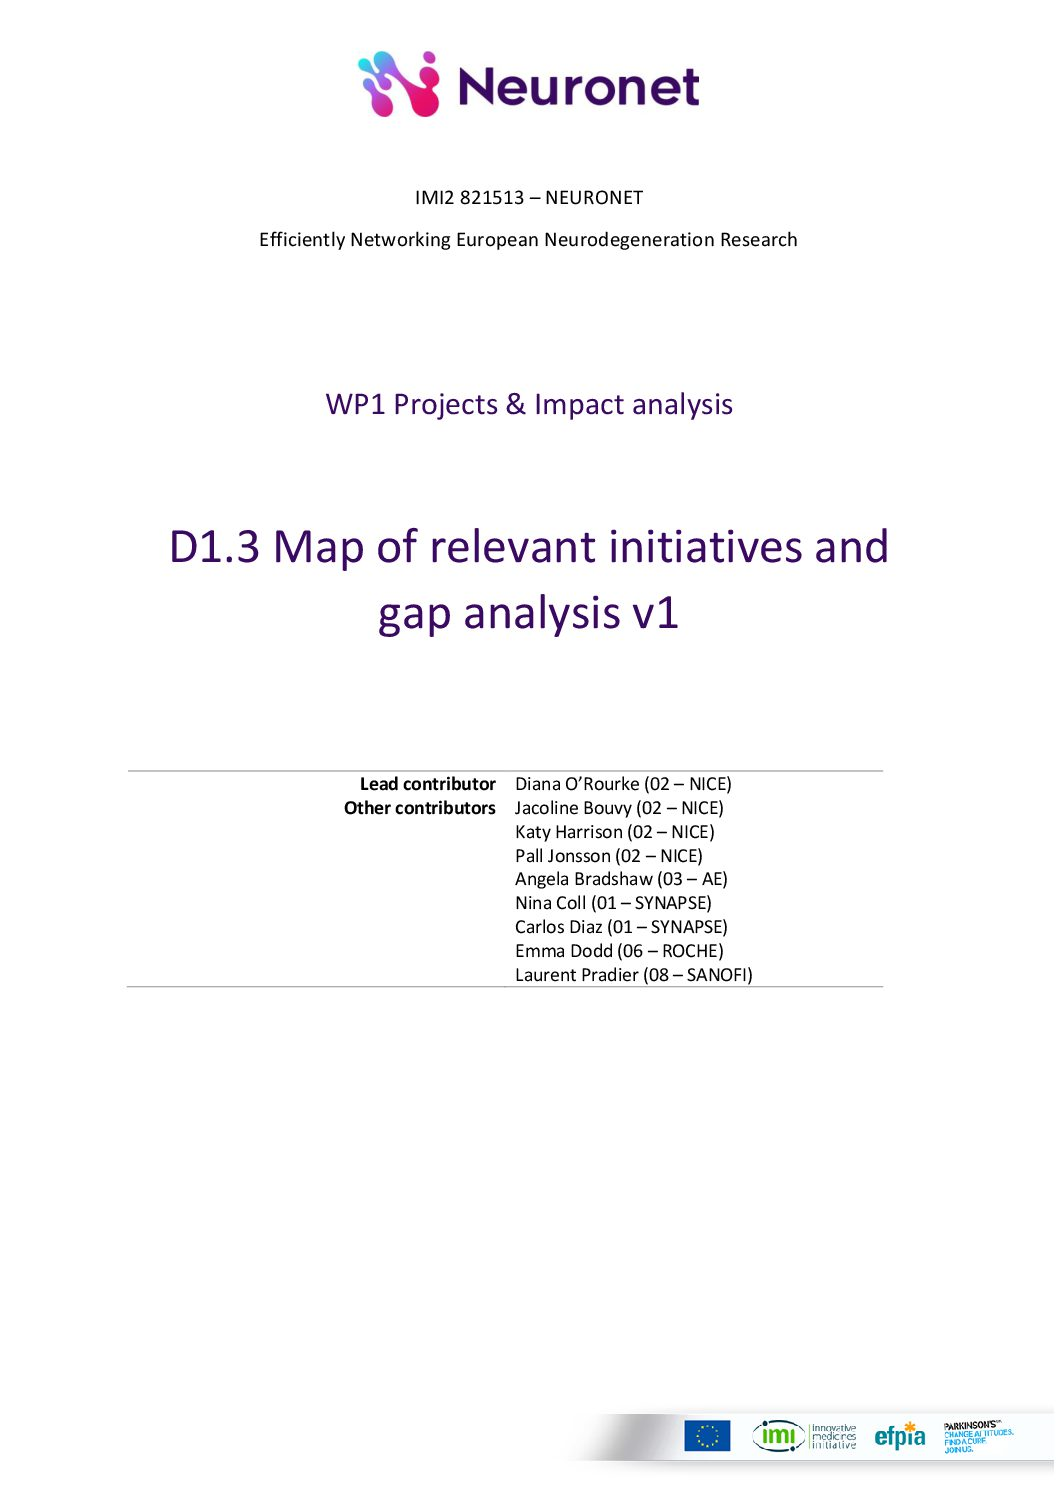 D1.3 Map of relevant initiatives and gap analysis v1